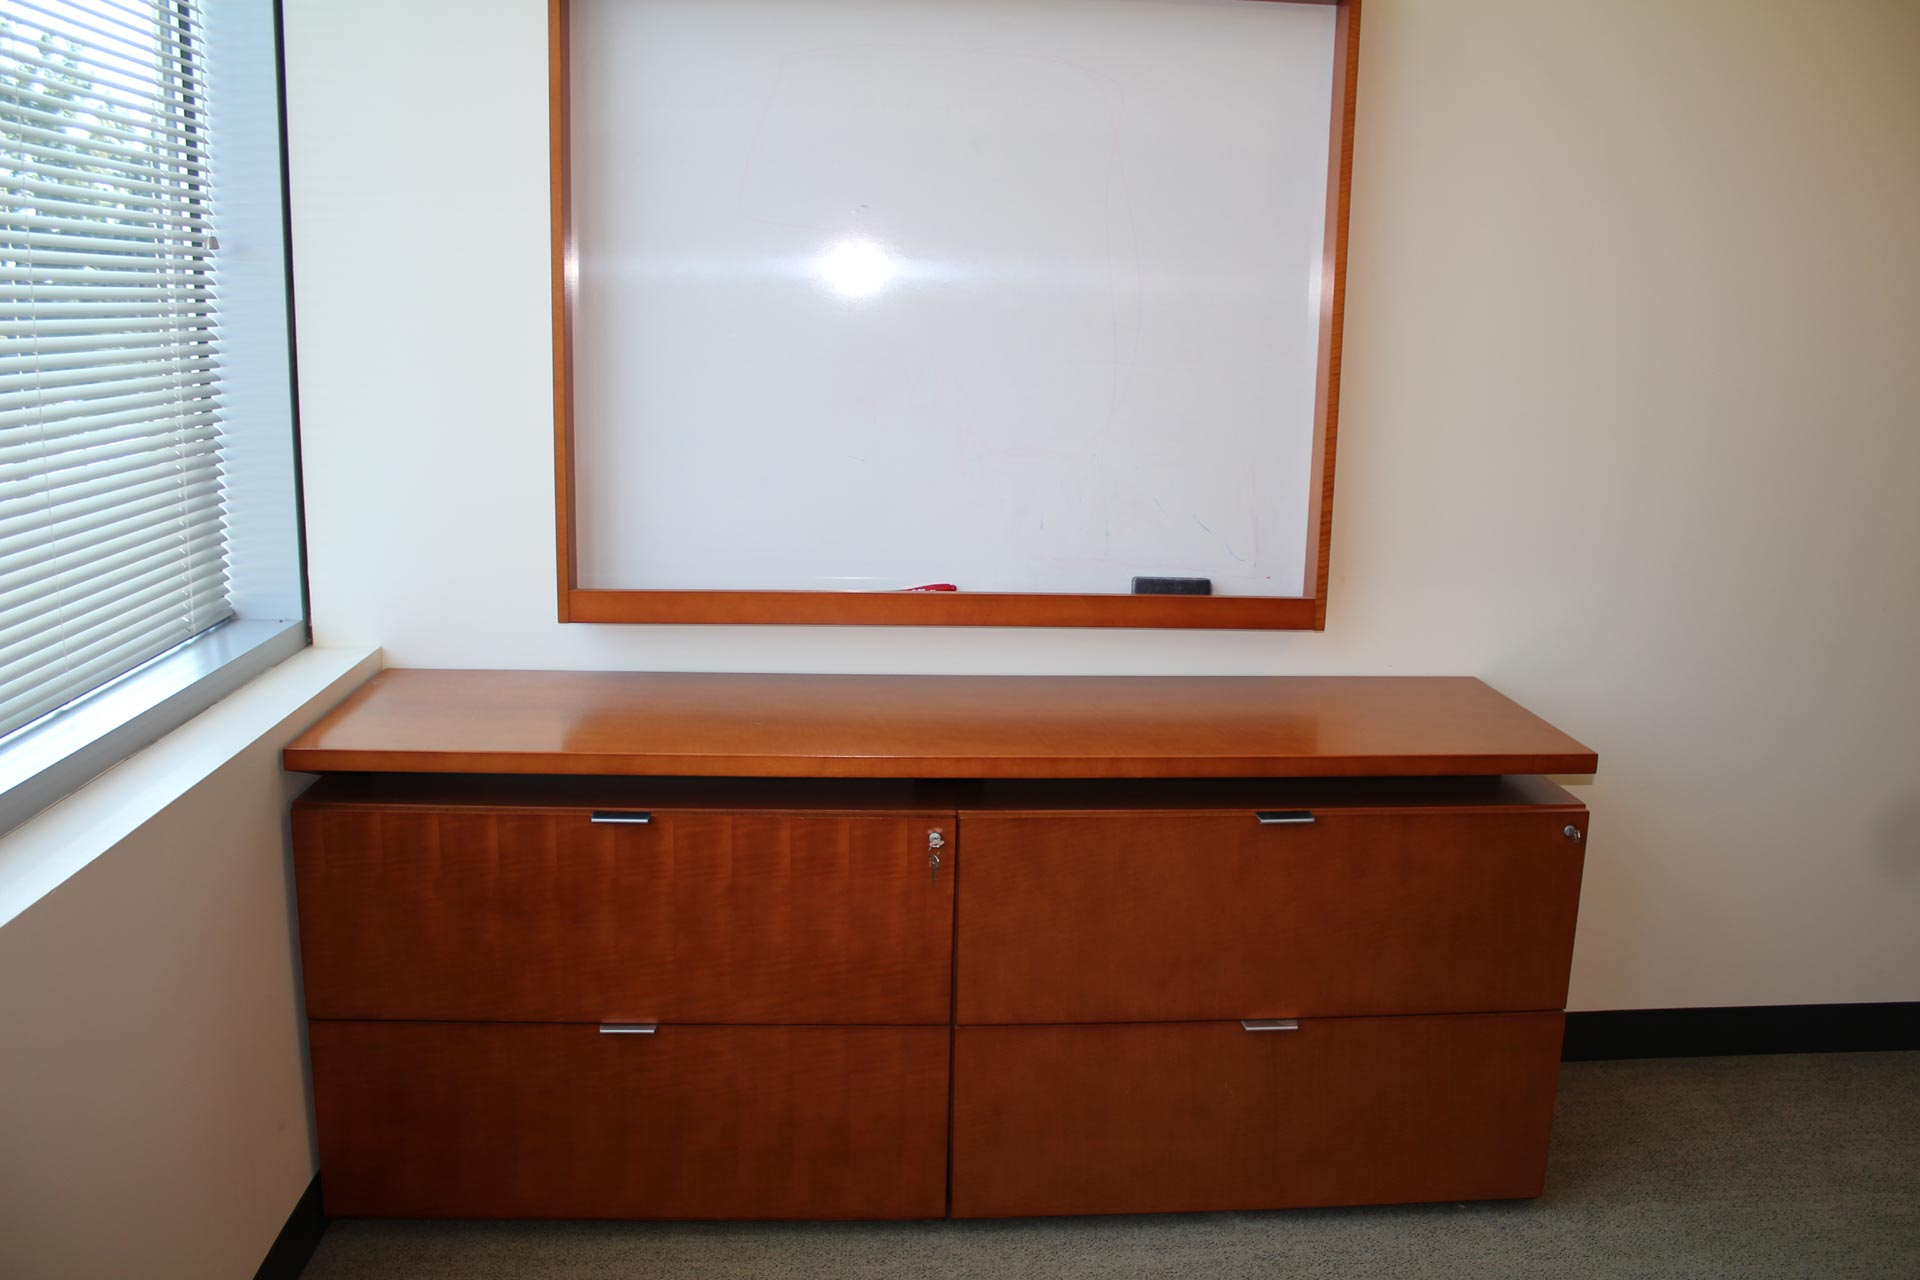 peartreeofficefurniture_peartreeofficefurniture_fs243a.jpg